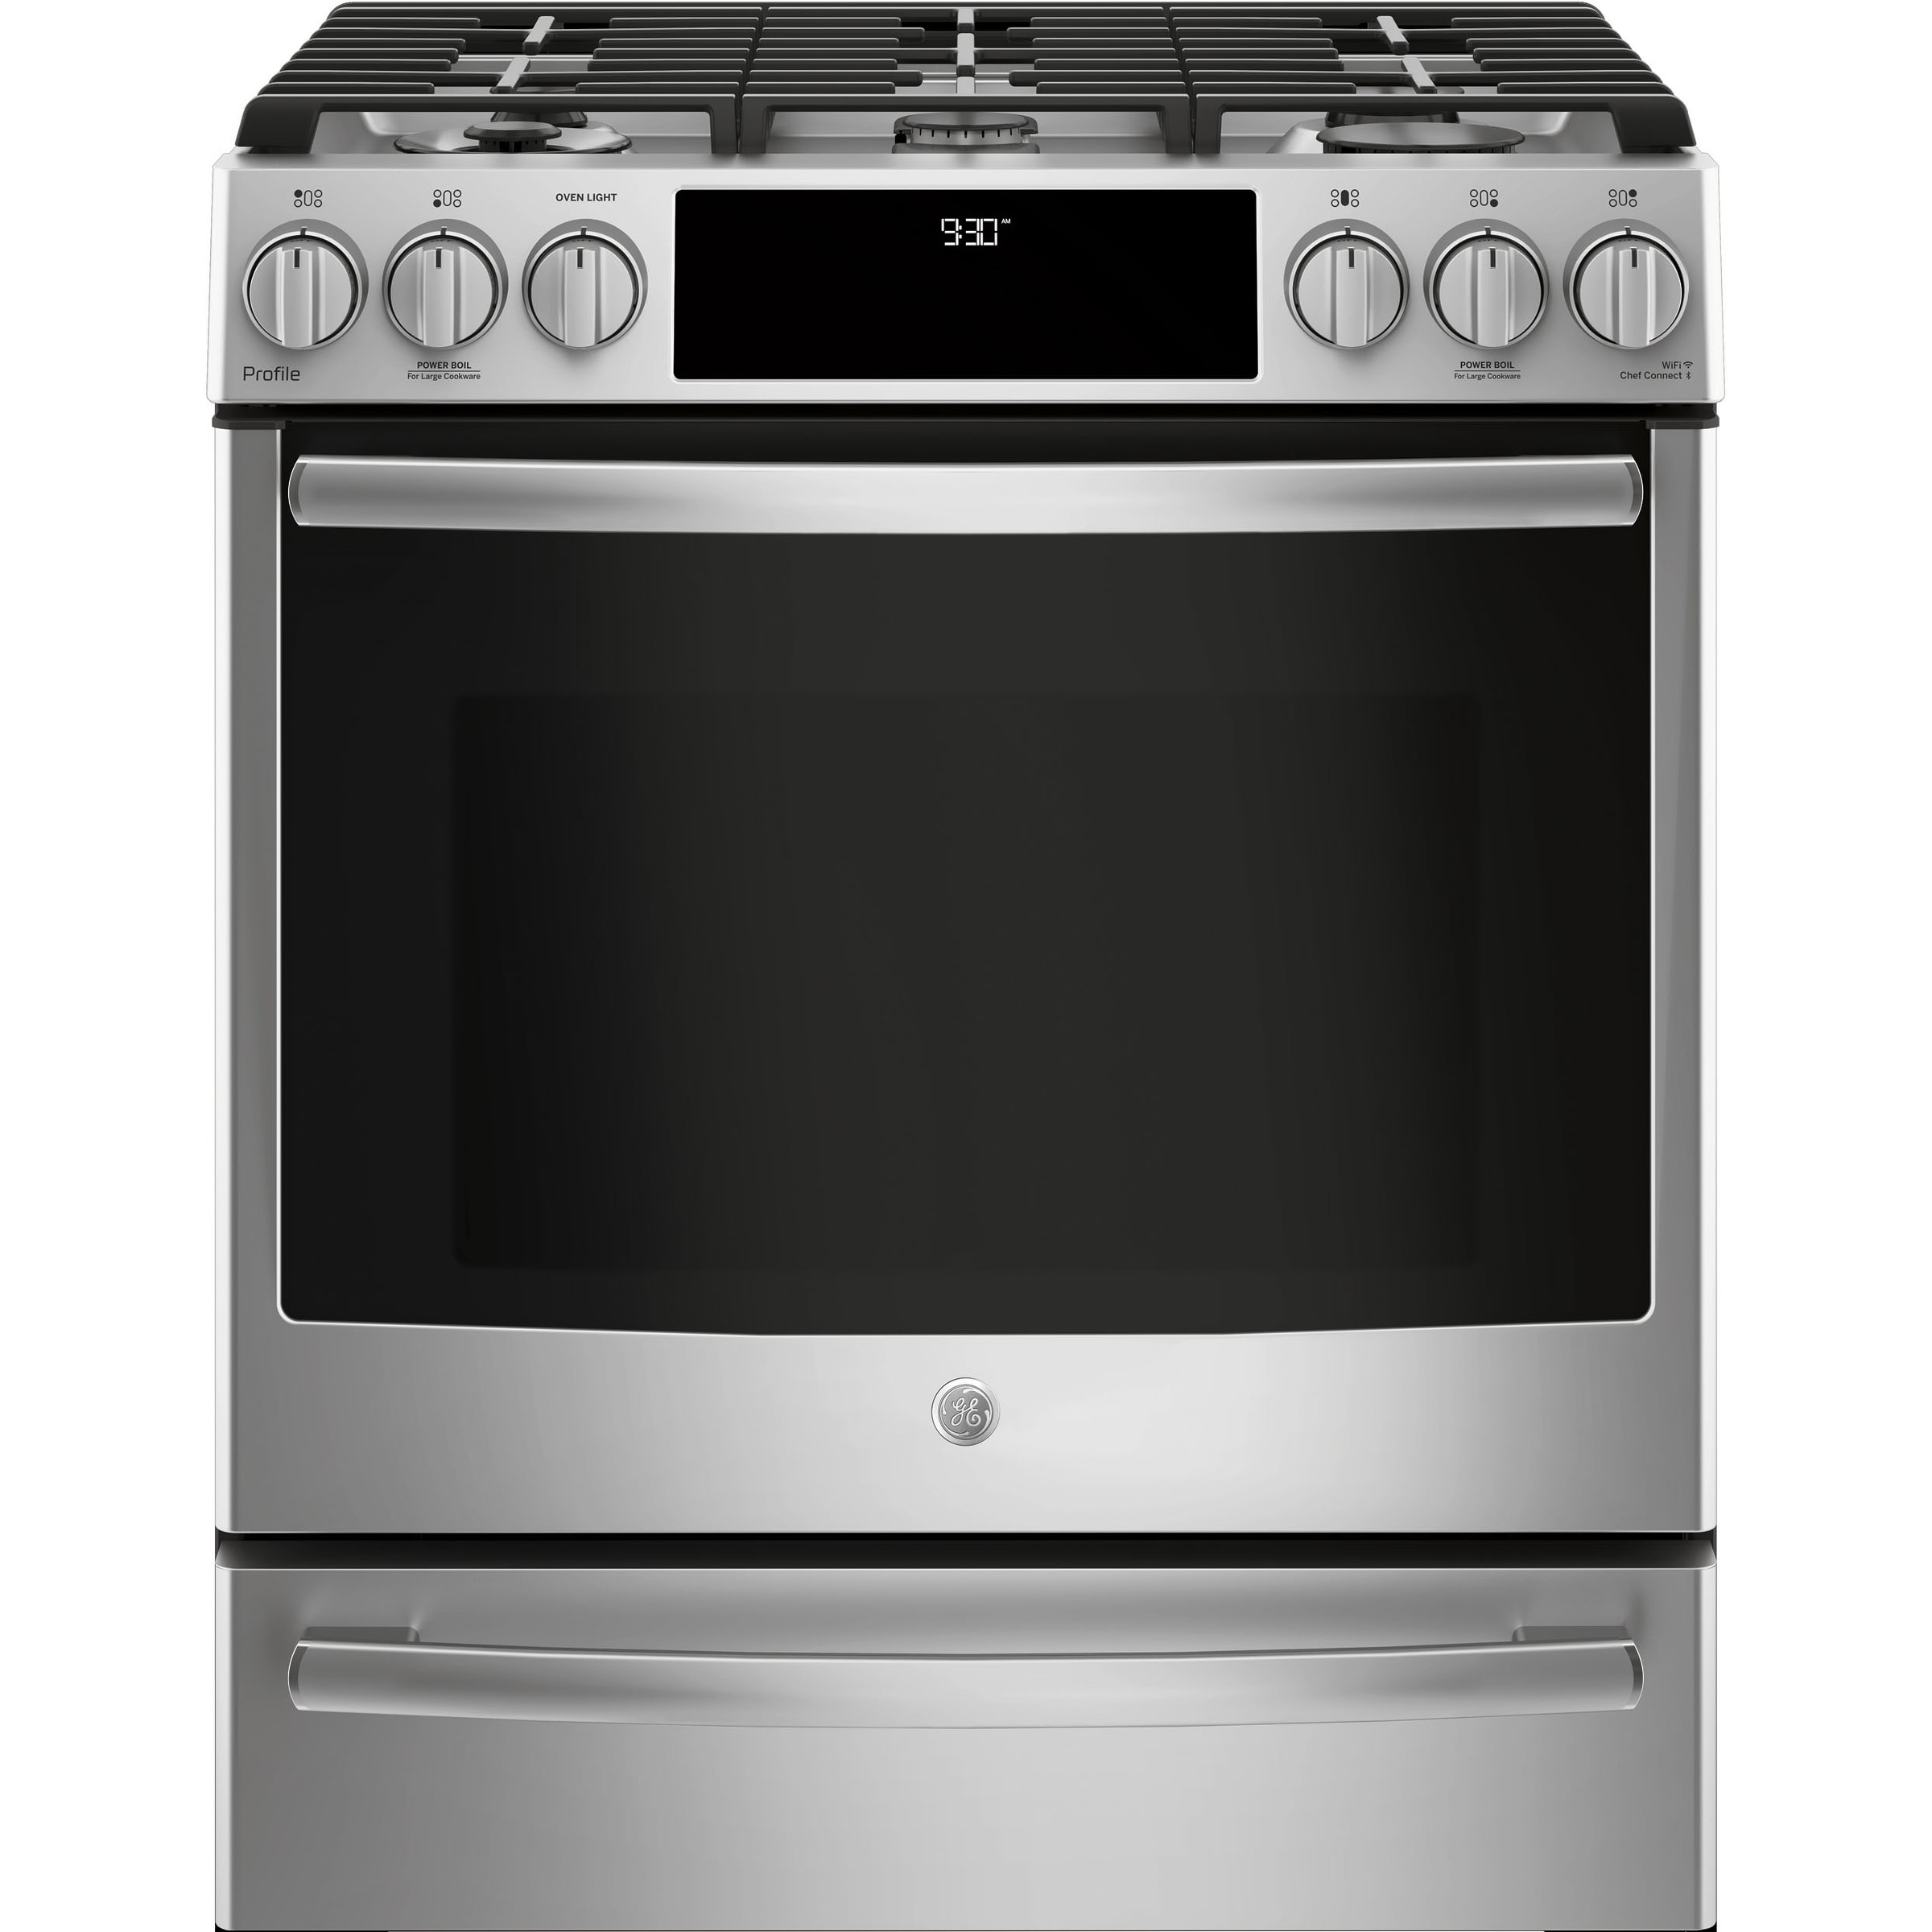 GE Profile Series 30 Dual Fuel Slide-In Front Control Range - Stainless Steel Assembled - Stainless Steel - Dual